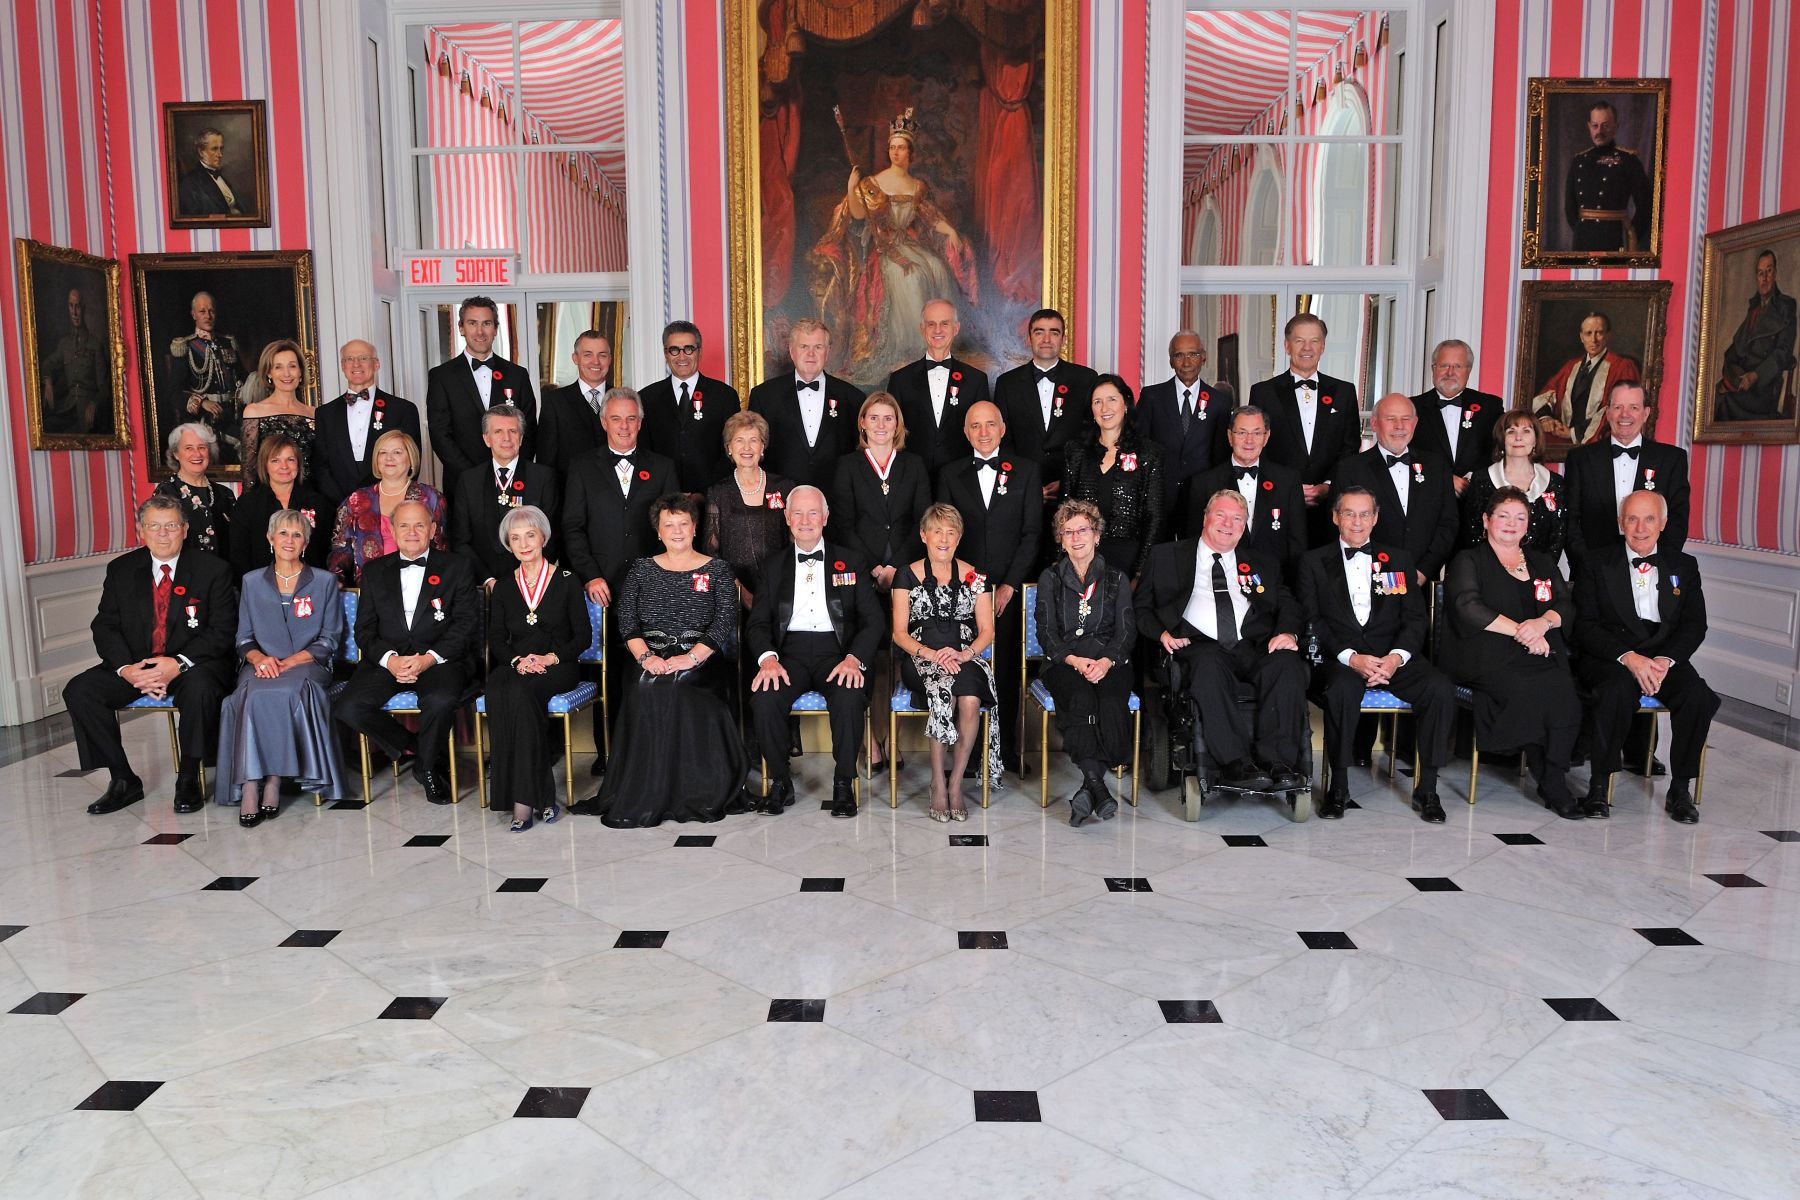 Their Excellencies are pictured with the recipients that were invested into the Order of Canada on November 4, 2011.